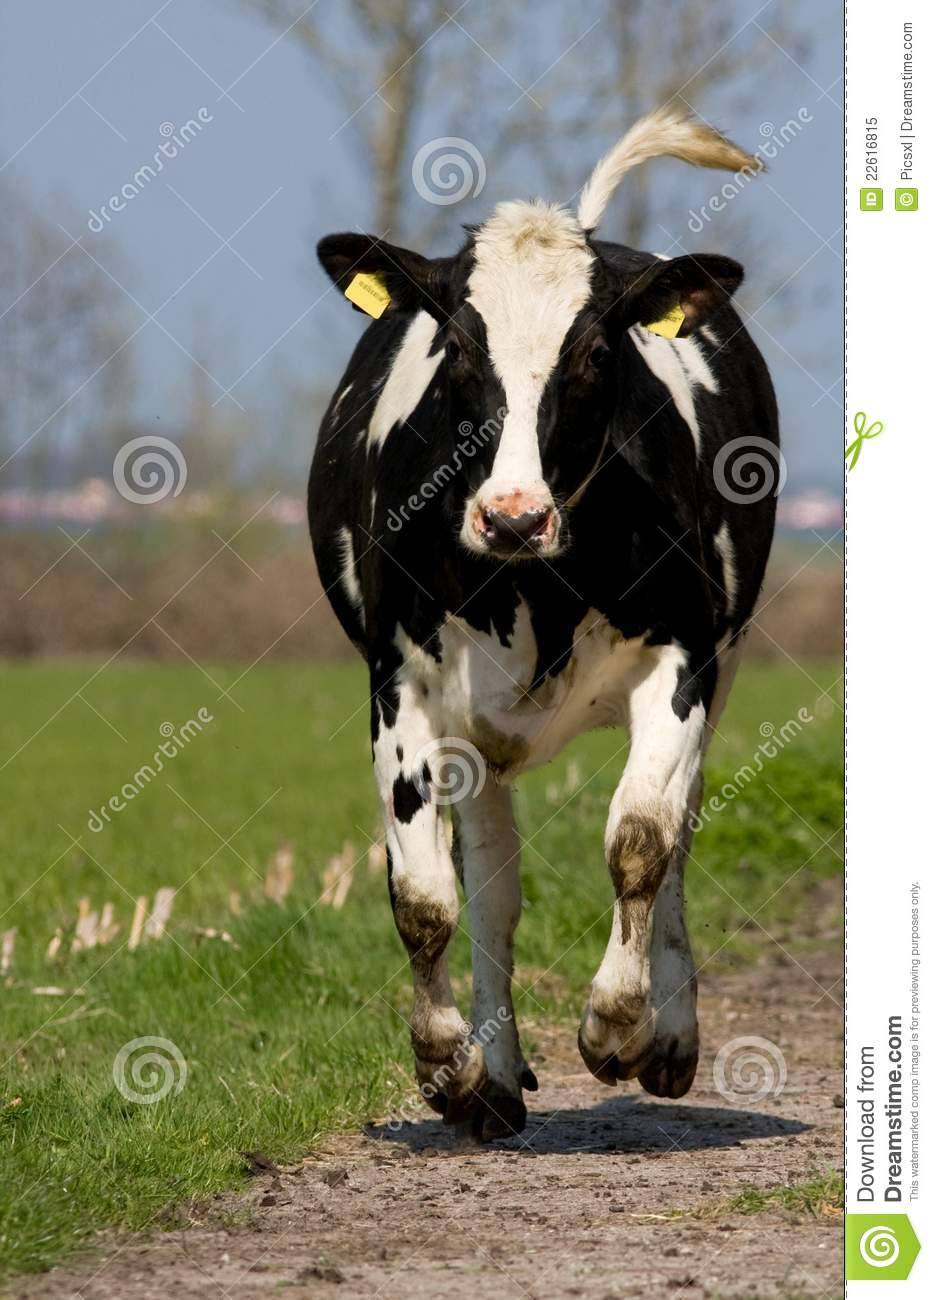 Black And White Cow Royalty Free Stock Photo Image 22616815